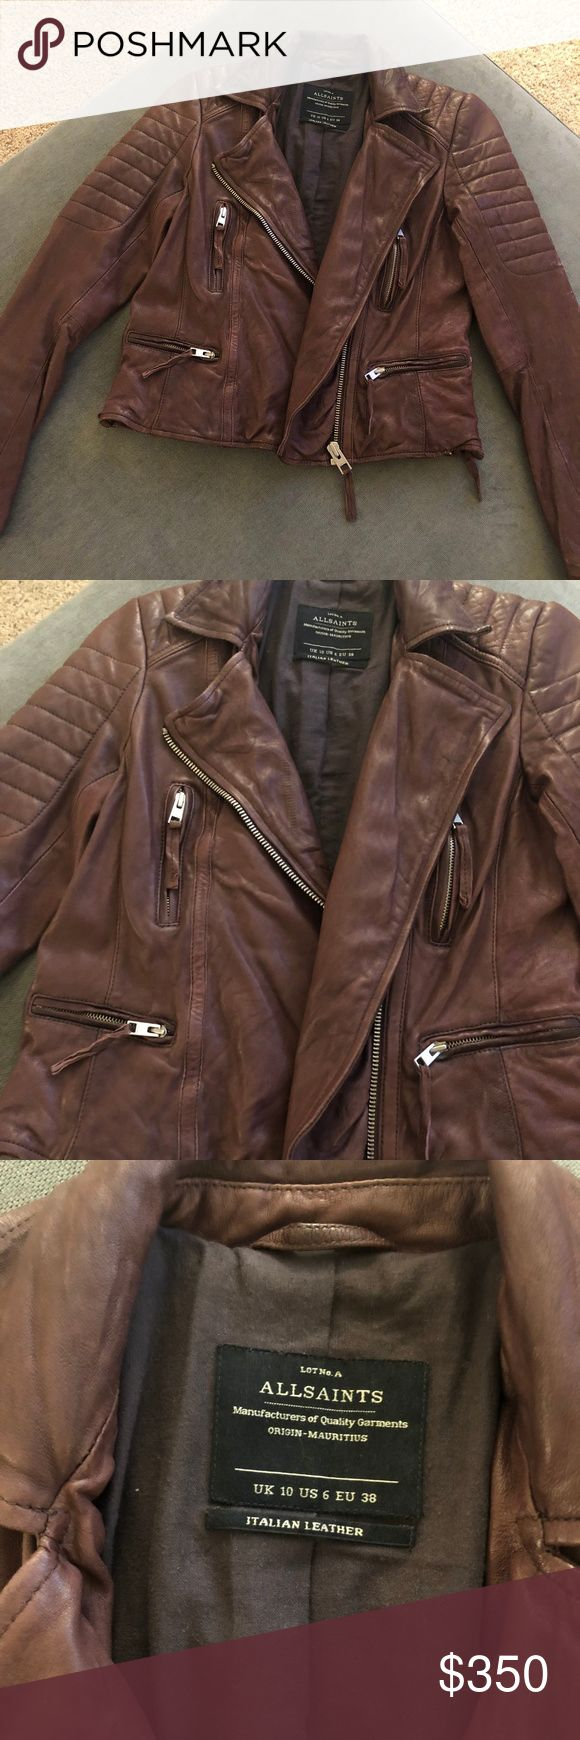 All Saints Genuine Leather Jacket in Cognac Leather